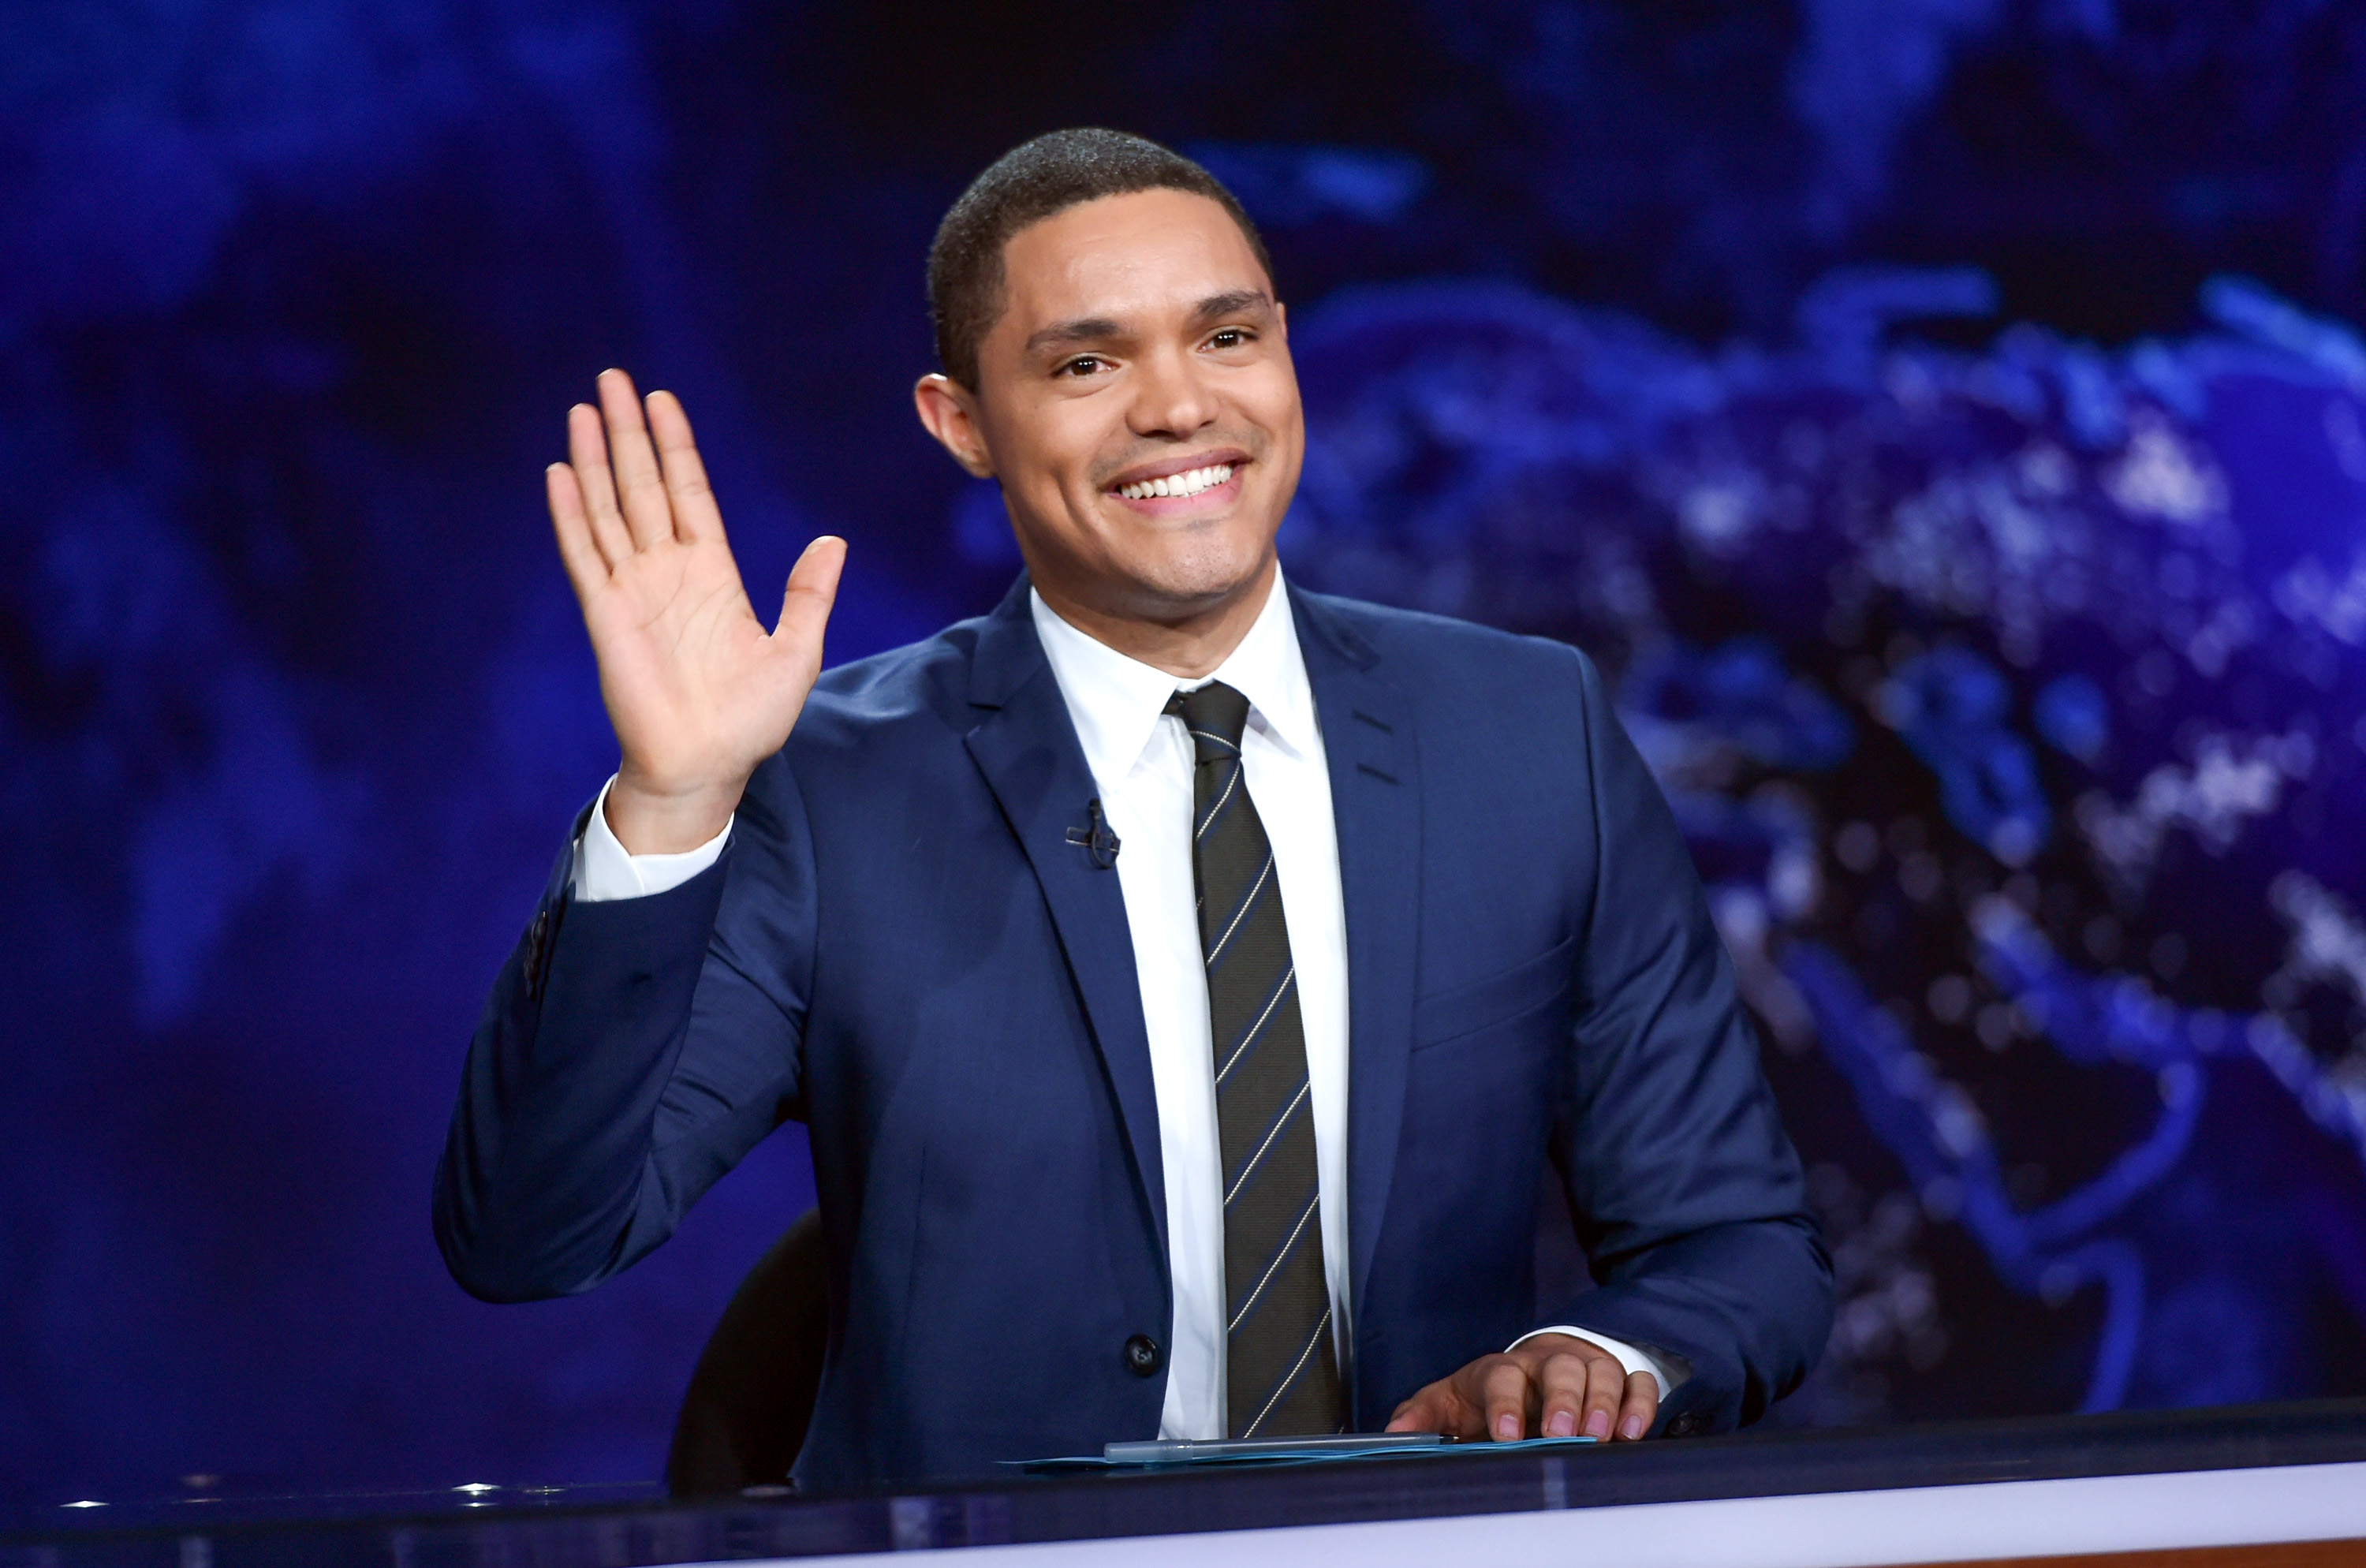 "FILe - In this Sept. 29, 2015 file photo, Trevor Noah gestures on the set during a taping of ""The Daily Show with Trevor Noah"" in New York. One day after an emergency appendectomy, Trevor Noah was expected back at his ""Daily Show"" anchor desk, taping a new episode set to air Thursday night.  (Photo by Evan Agostini/Invision/AP, File)"